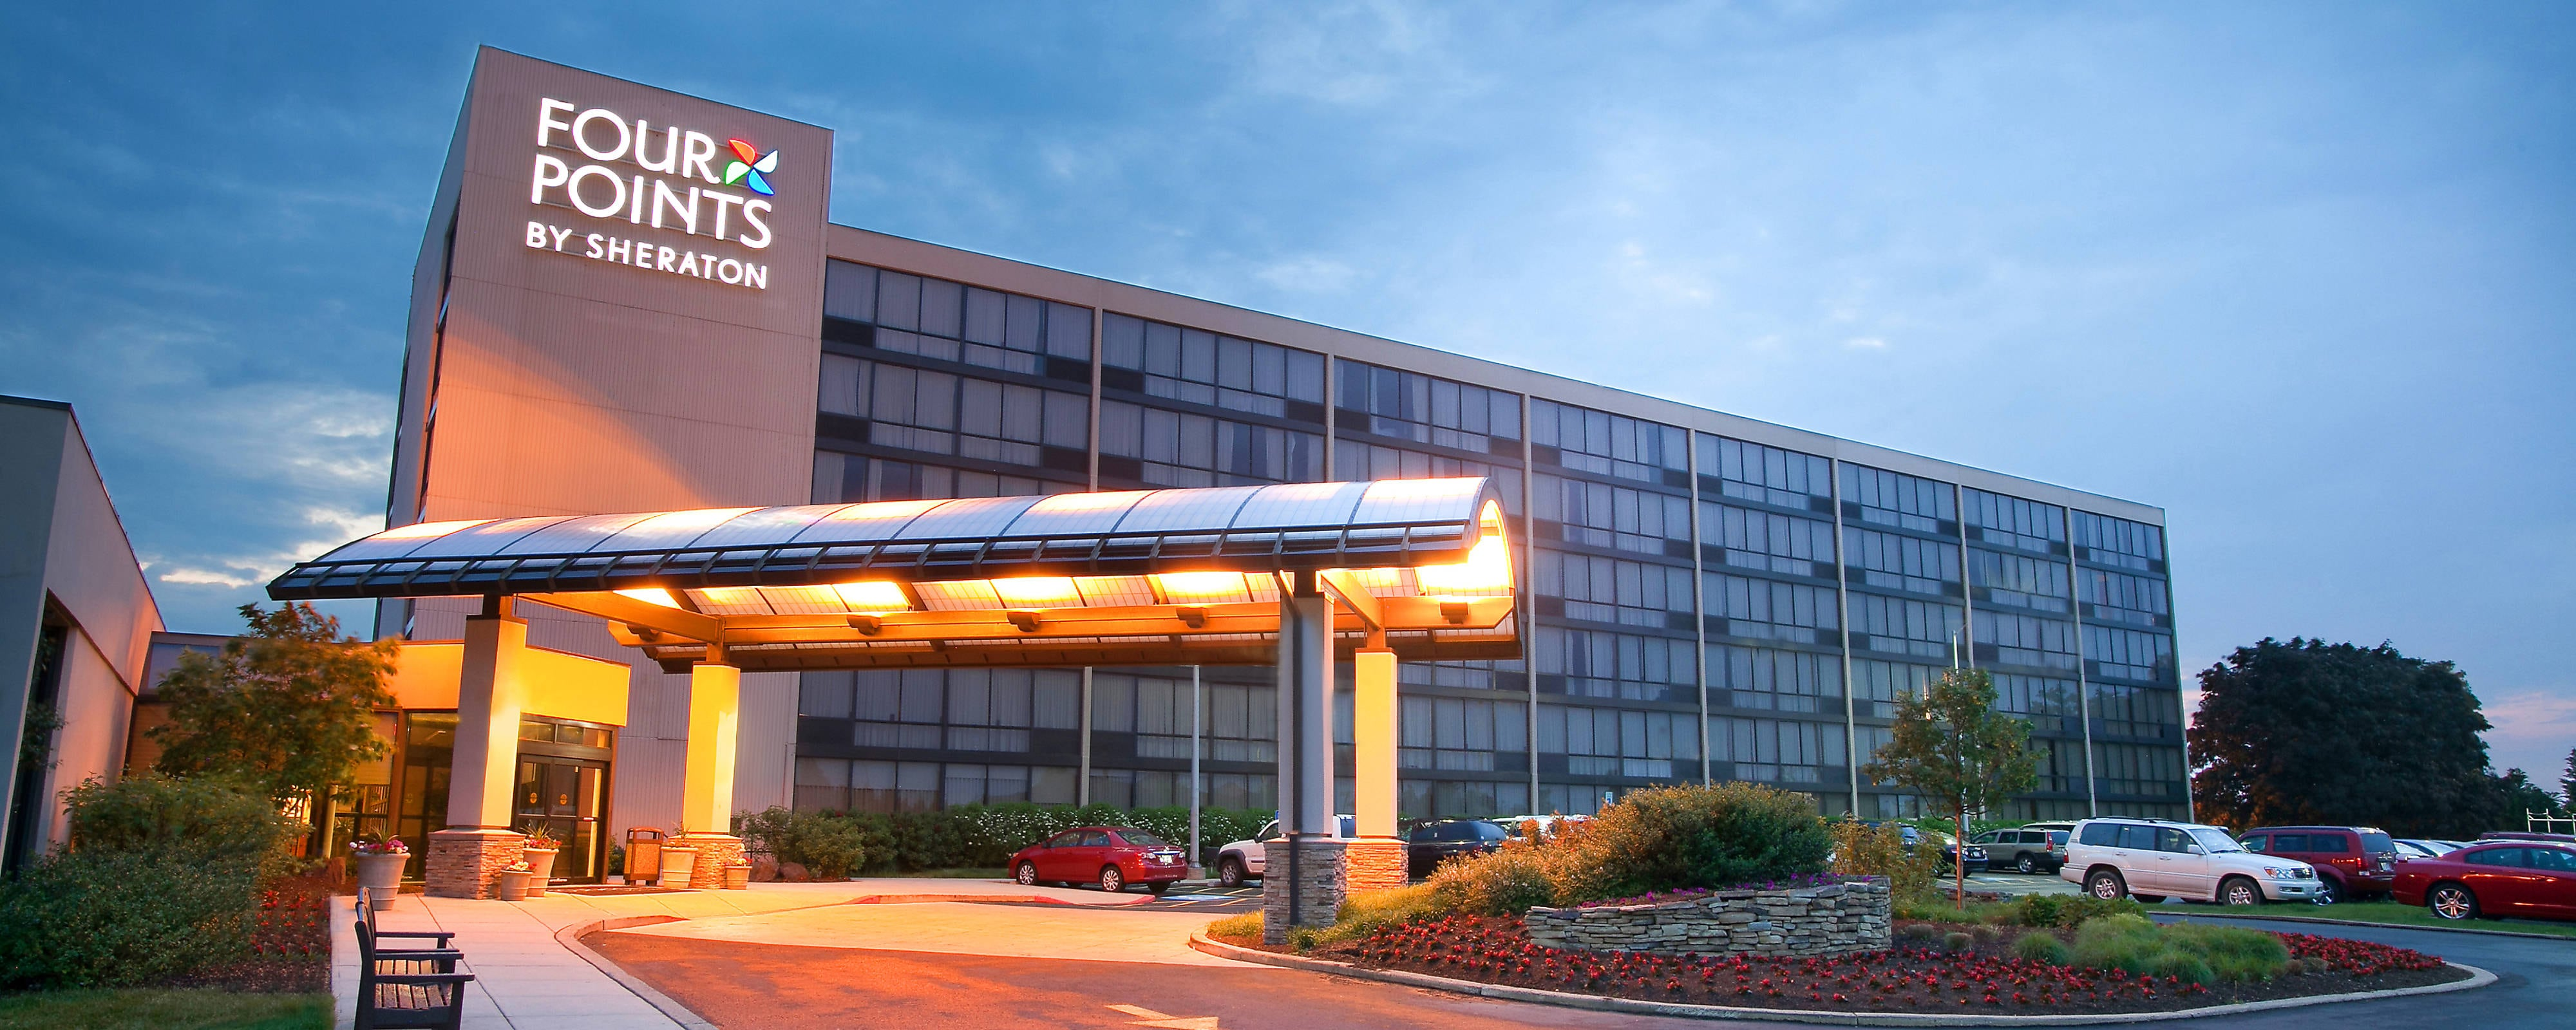 Hotels In Northeast Philadelphia Pa Four Points By Sheraton